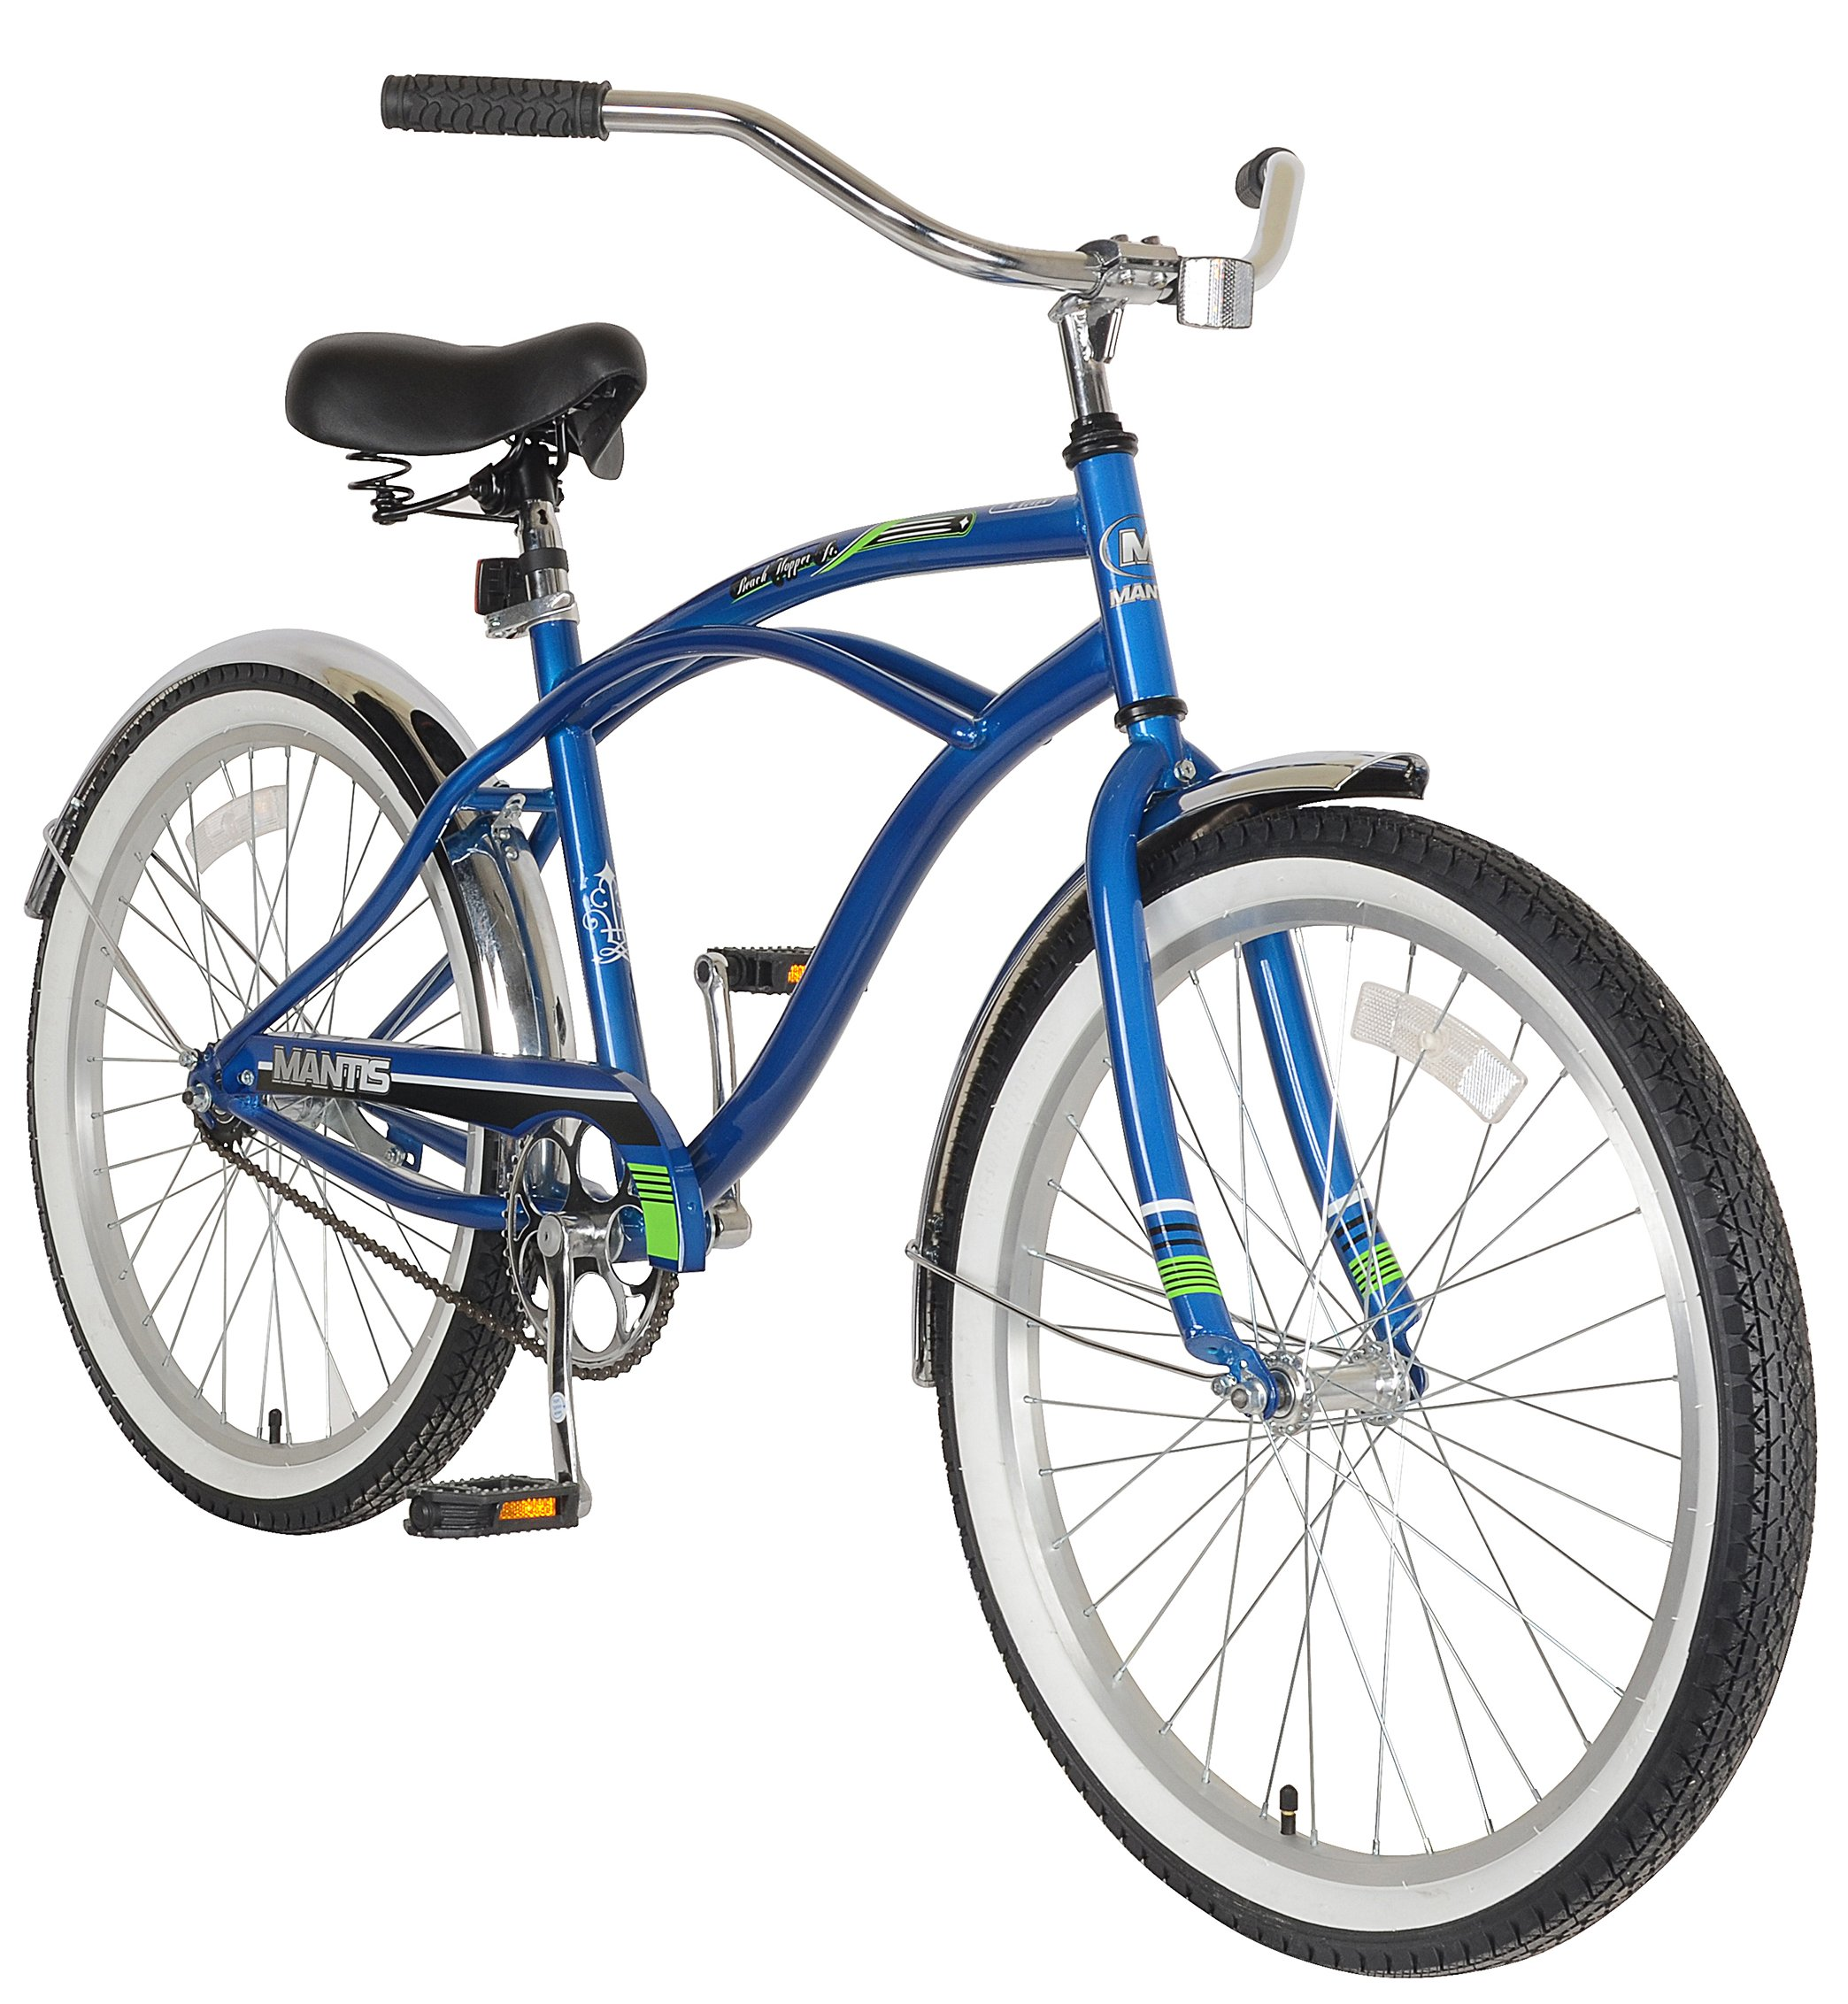 "Mantis Beach Hopper Jr. 24"" Beach Cruiser Bicycle"